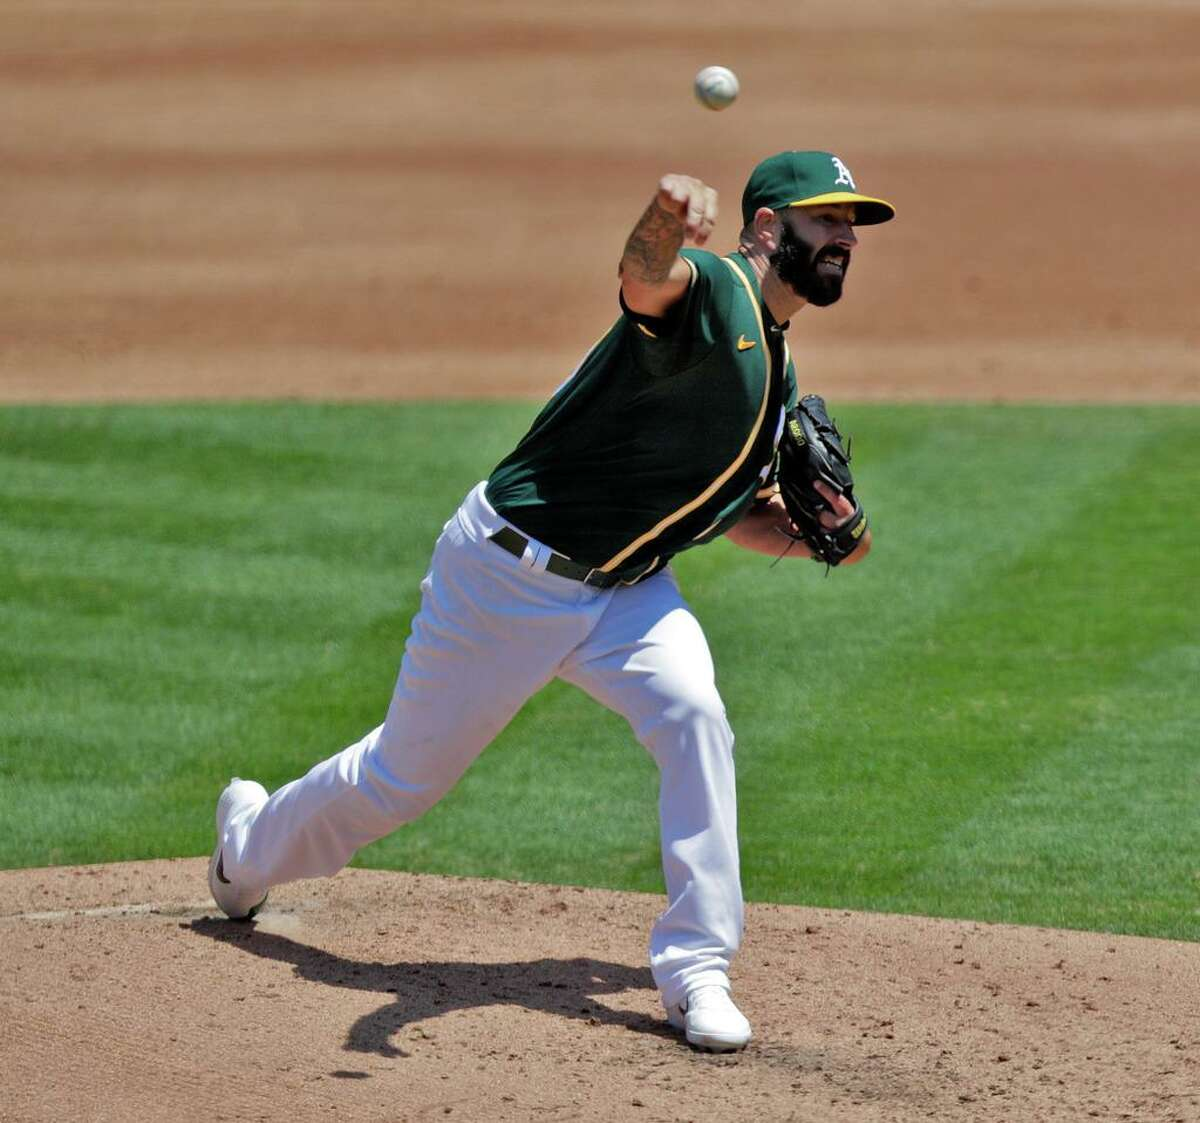 A's pitcher Mike Fiers, who has made only two starts this season, felt discomfort throwing Monday.